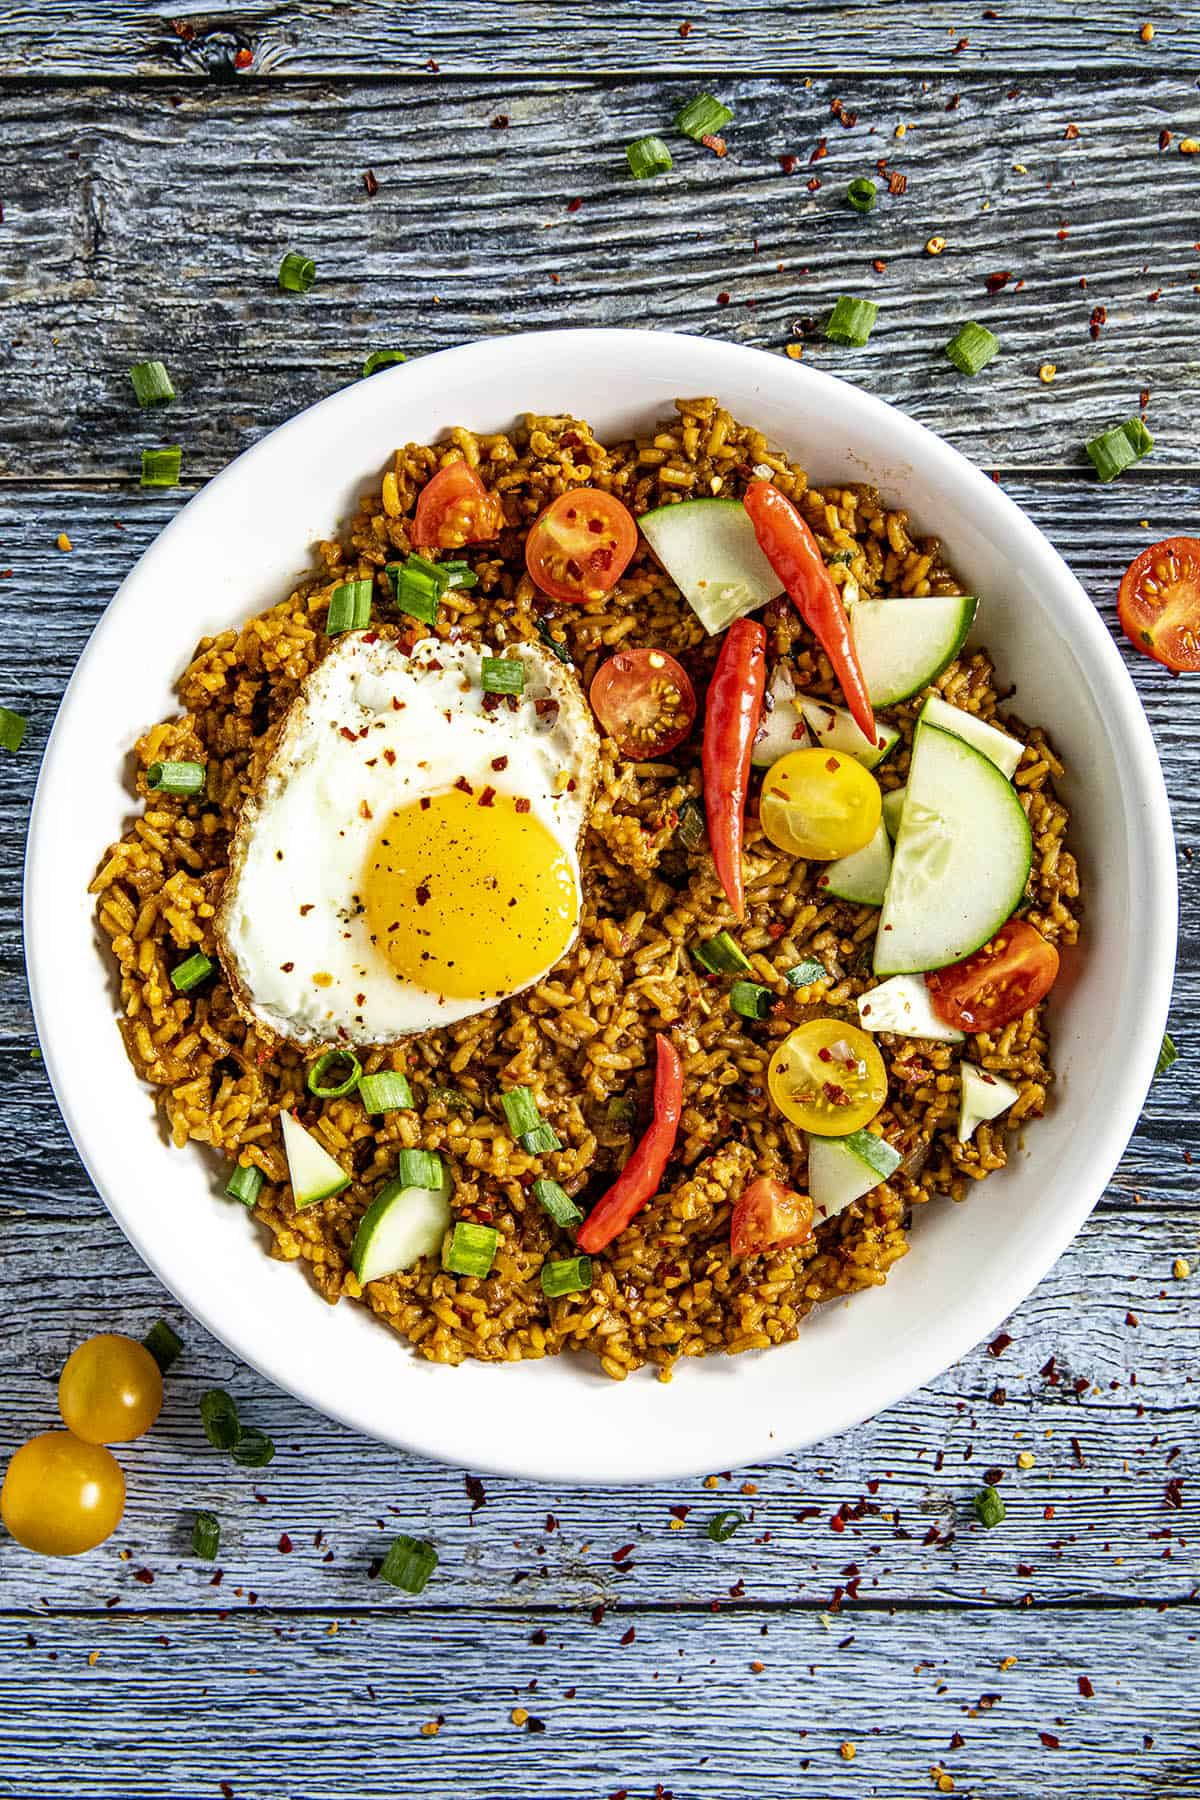 Indonesian Fried Rice (Nasi Goreng) in a bowl, ready to serve